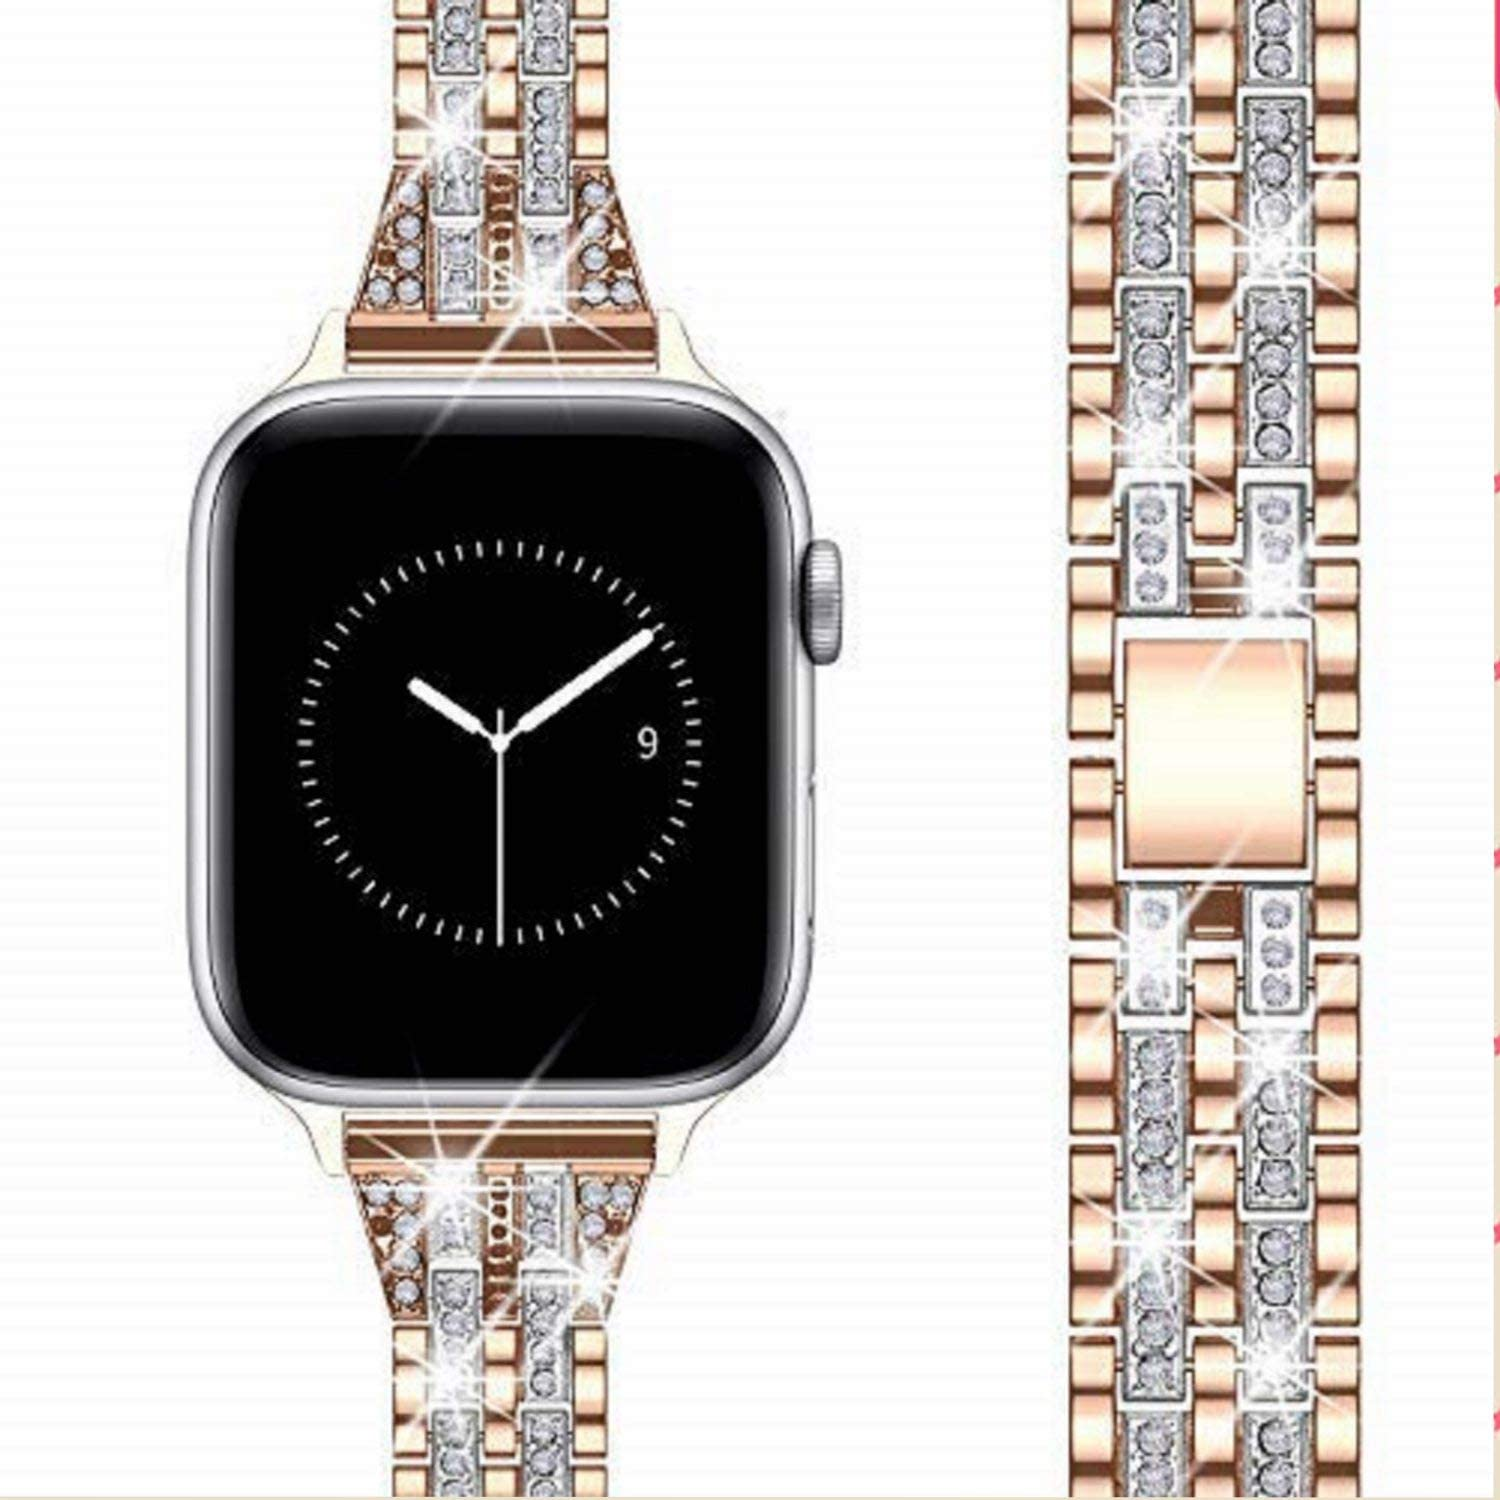 TOWOND Bling Band Compatible with Apple Watch Band 38mm 40mm Women, Jewelry Metal Diamond Bracelet Replacement for iWatch Band Series 6/5/4/3/2/1/SE, Wristband Strap Stainless Steel Metal Watch Bands